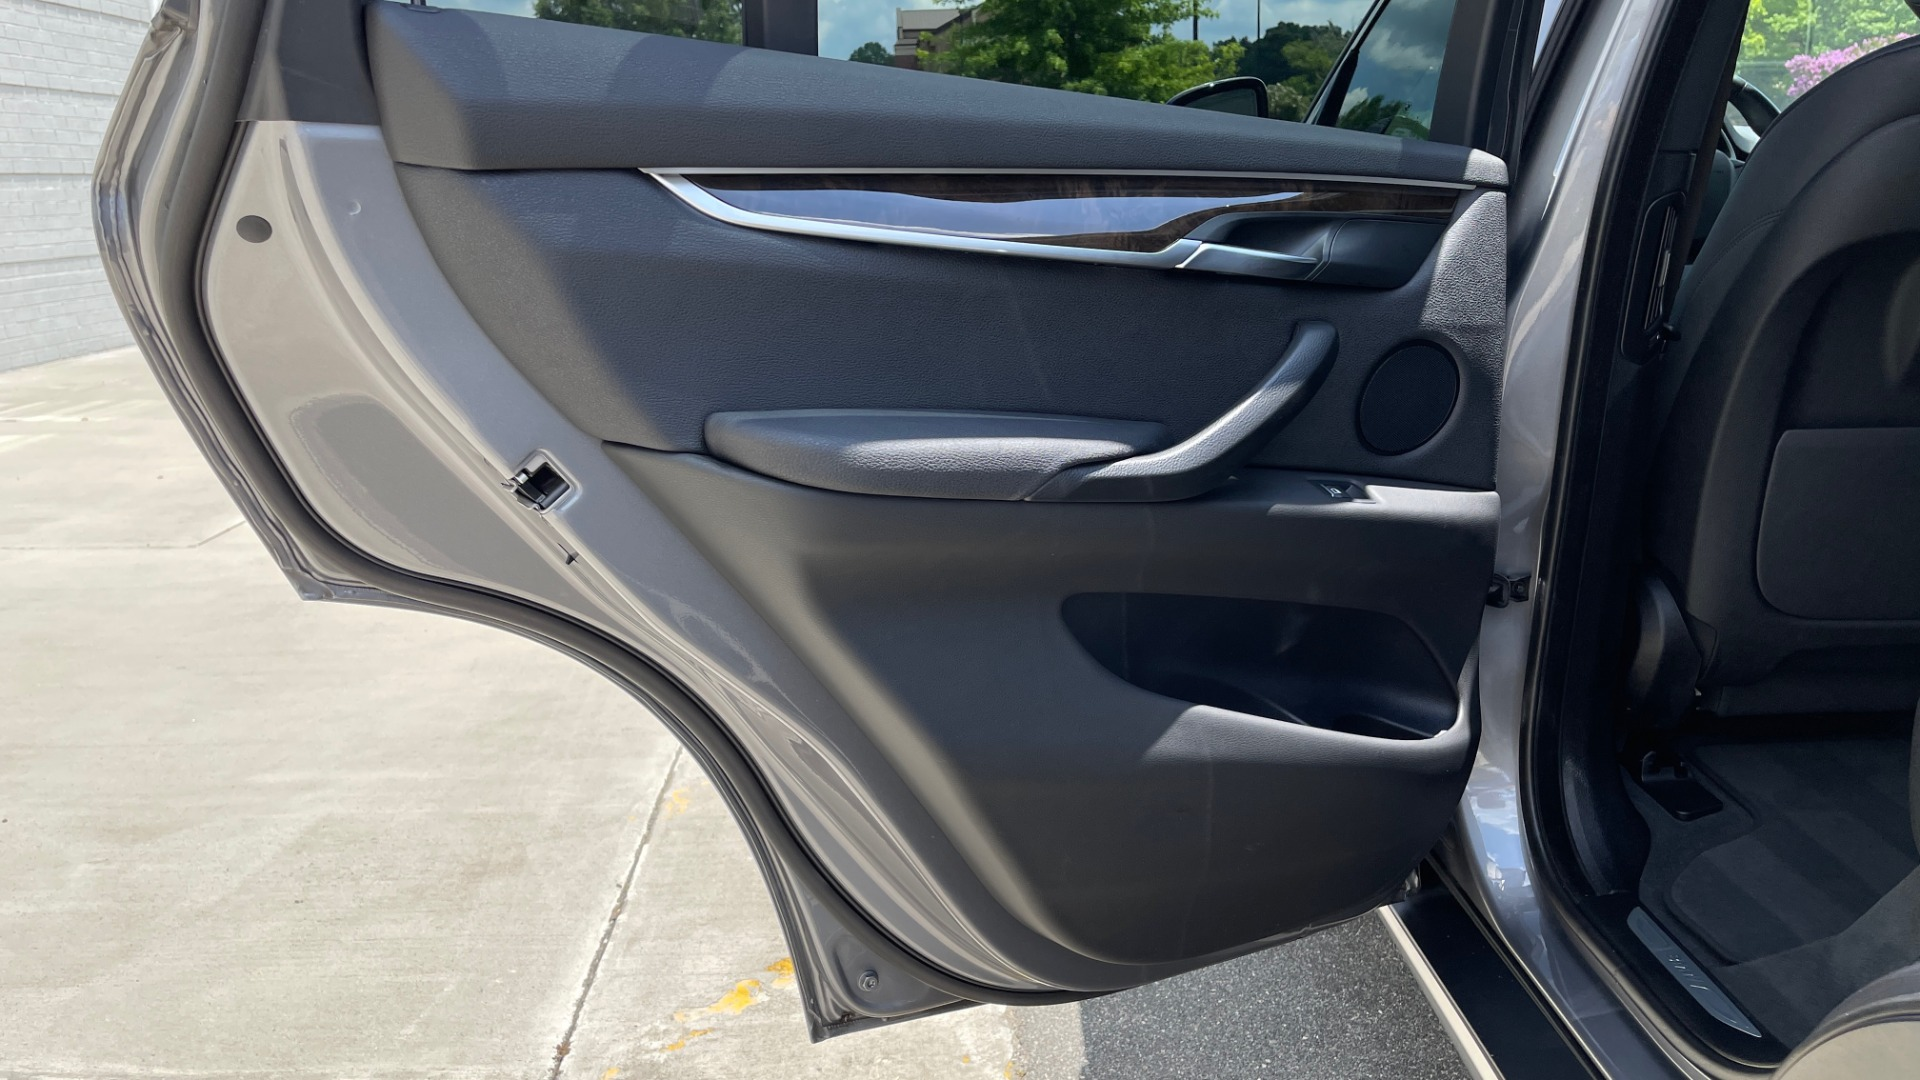 Used 2018 BMW X5 XDRIVE35I PREMIUM / DRVR ASST / WIRELESS CHARGING / CAMERAS for sale $46,995 at Formula Imports in Charlotte NC 28227 65